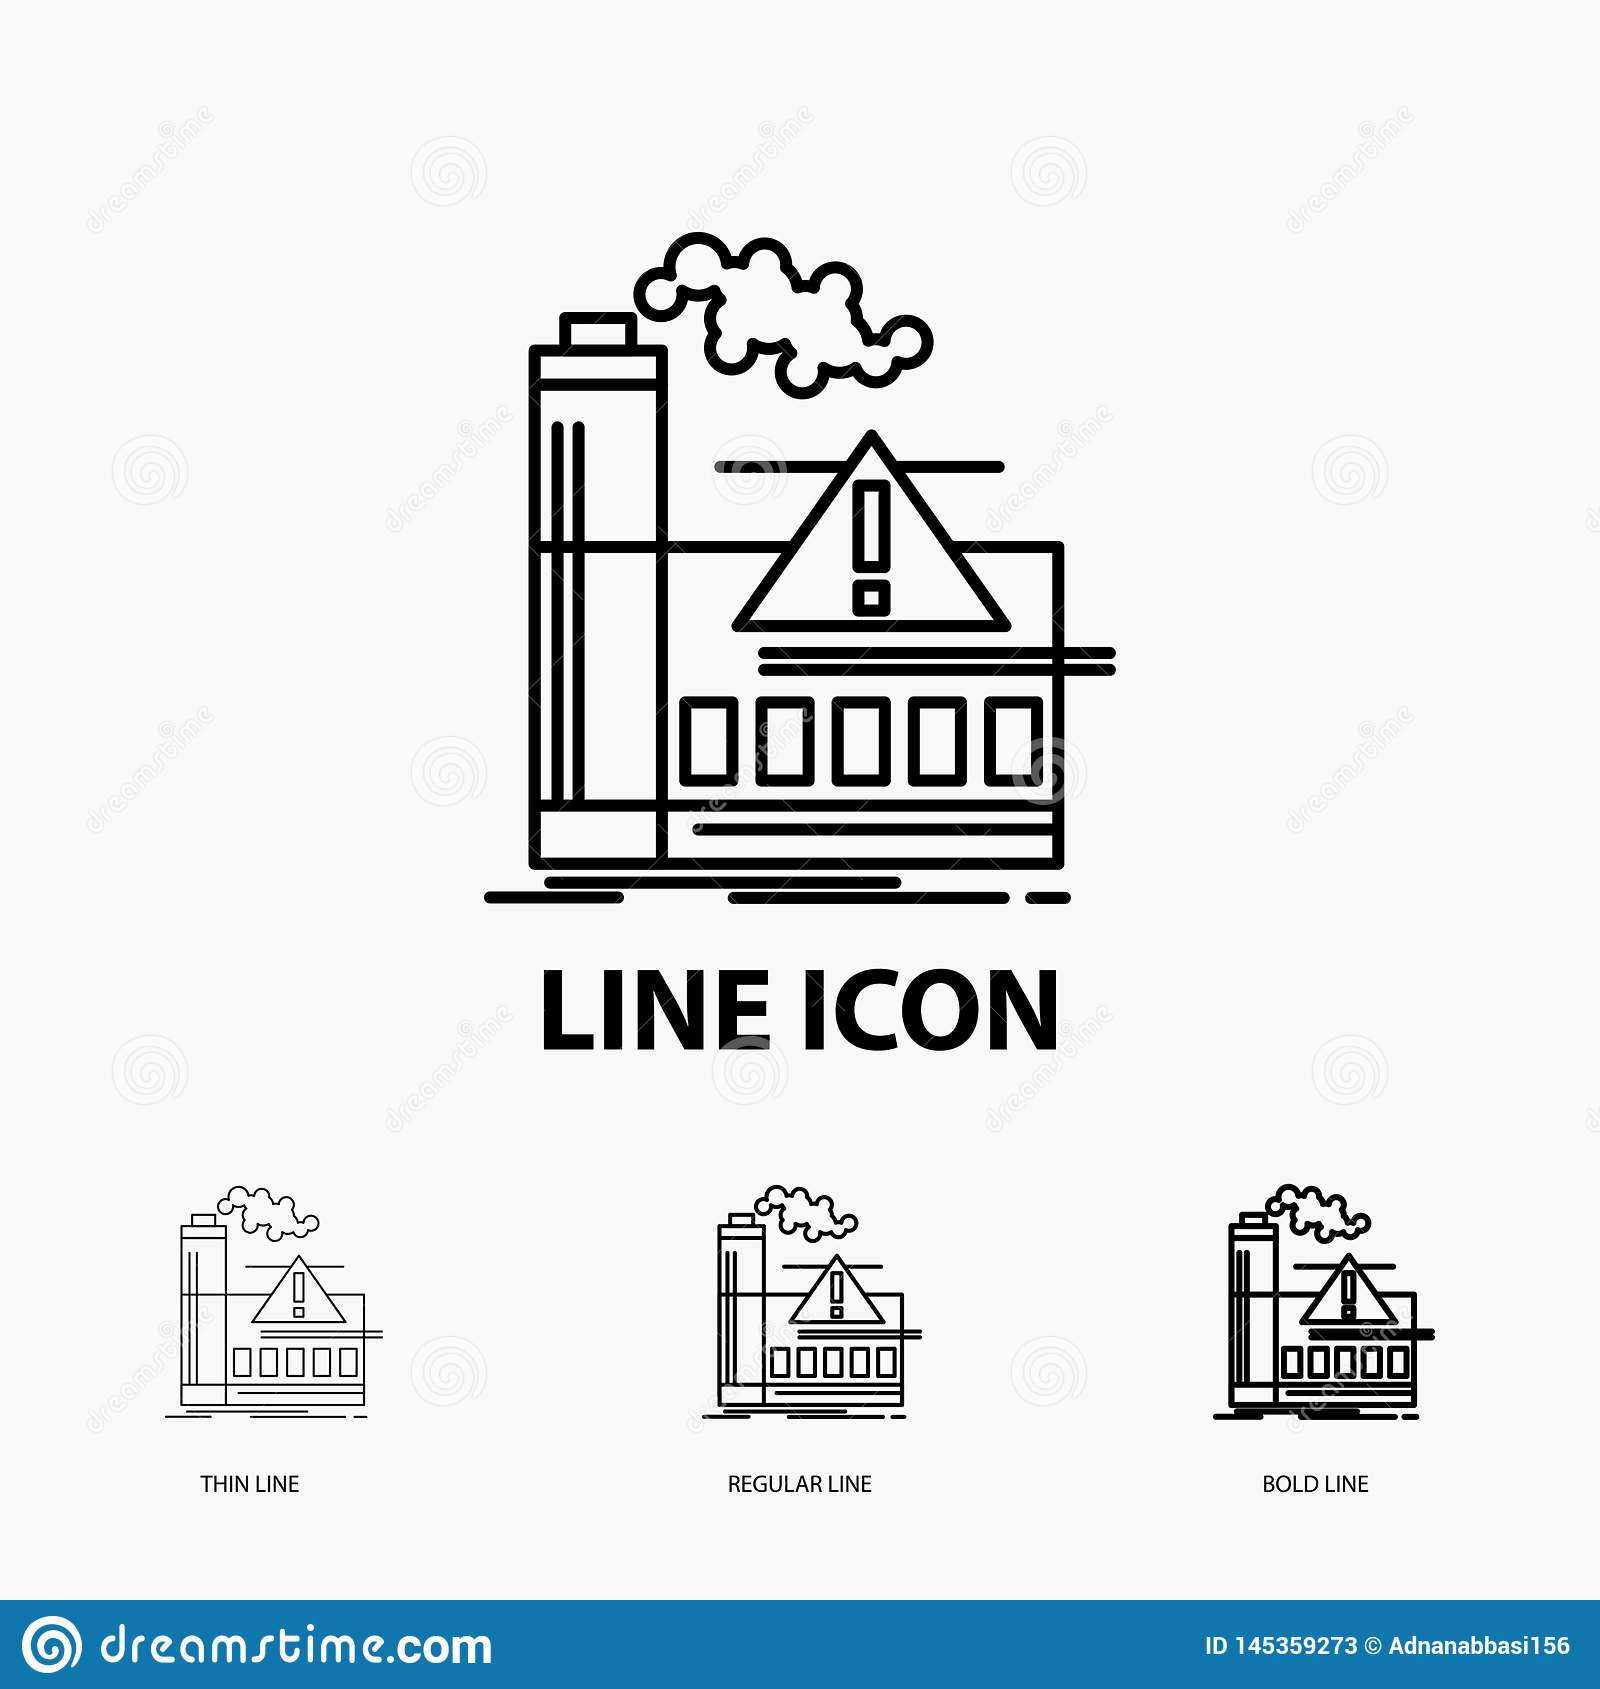 pollution, Factory, Air, Alert, industry Icon in Thin, Regular and Bold Line Style. Vector illustration